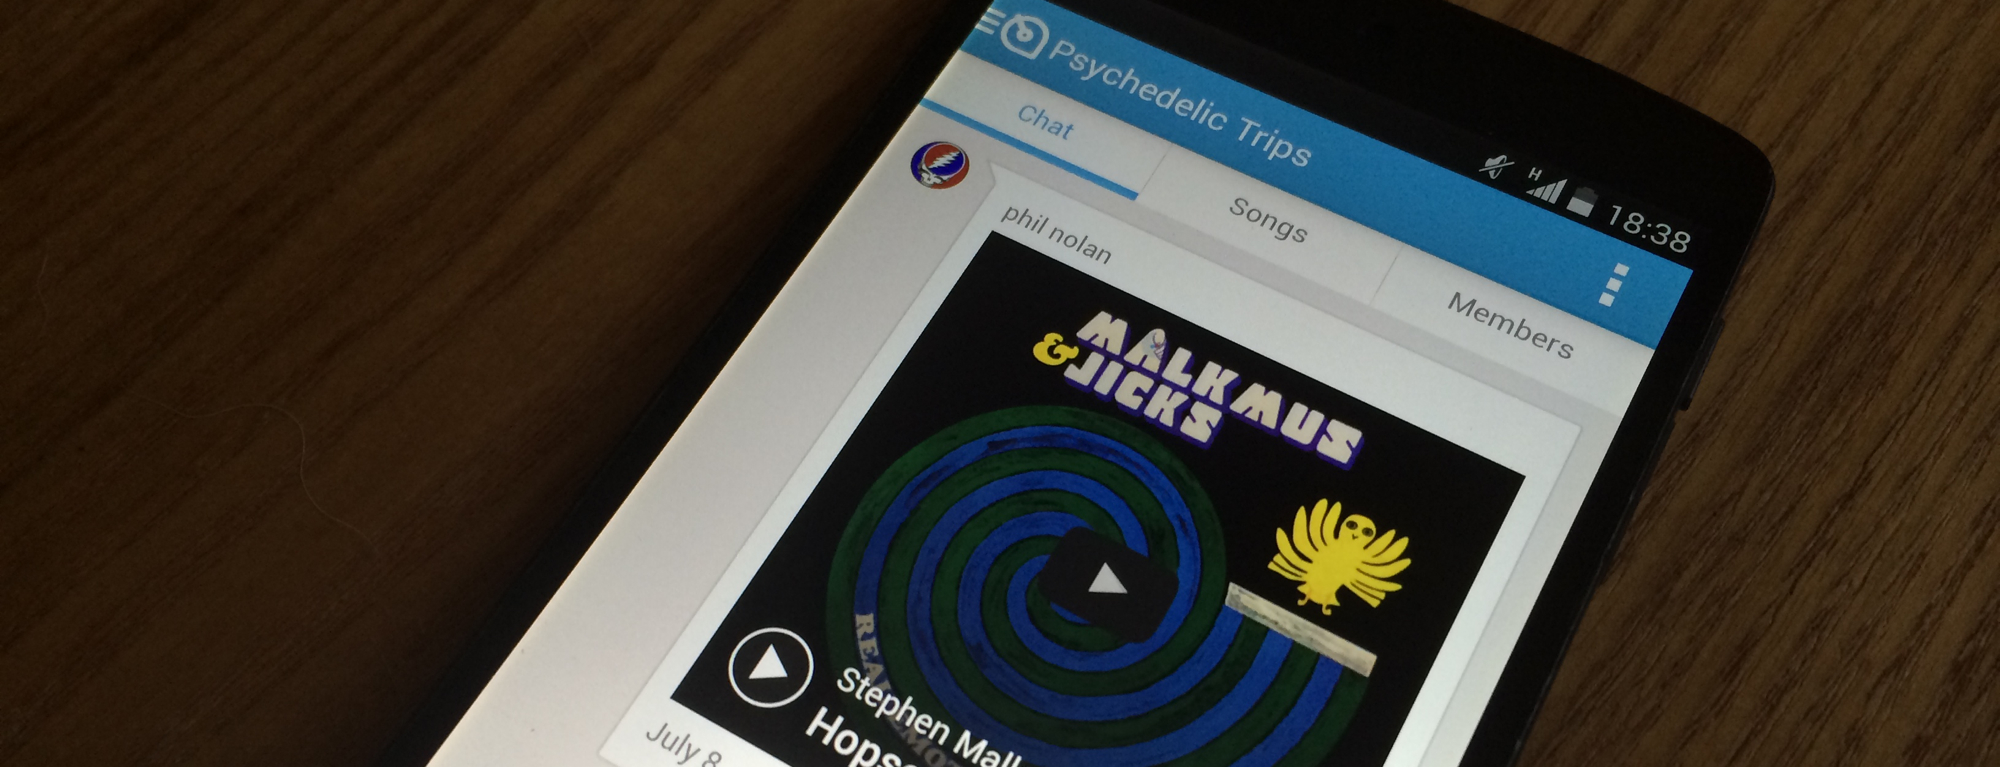 Soundwave Evolves Into Music-Focused Group Messaging